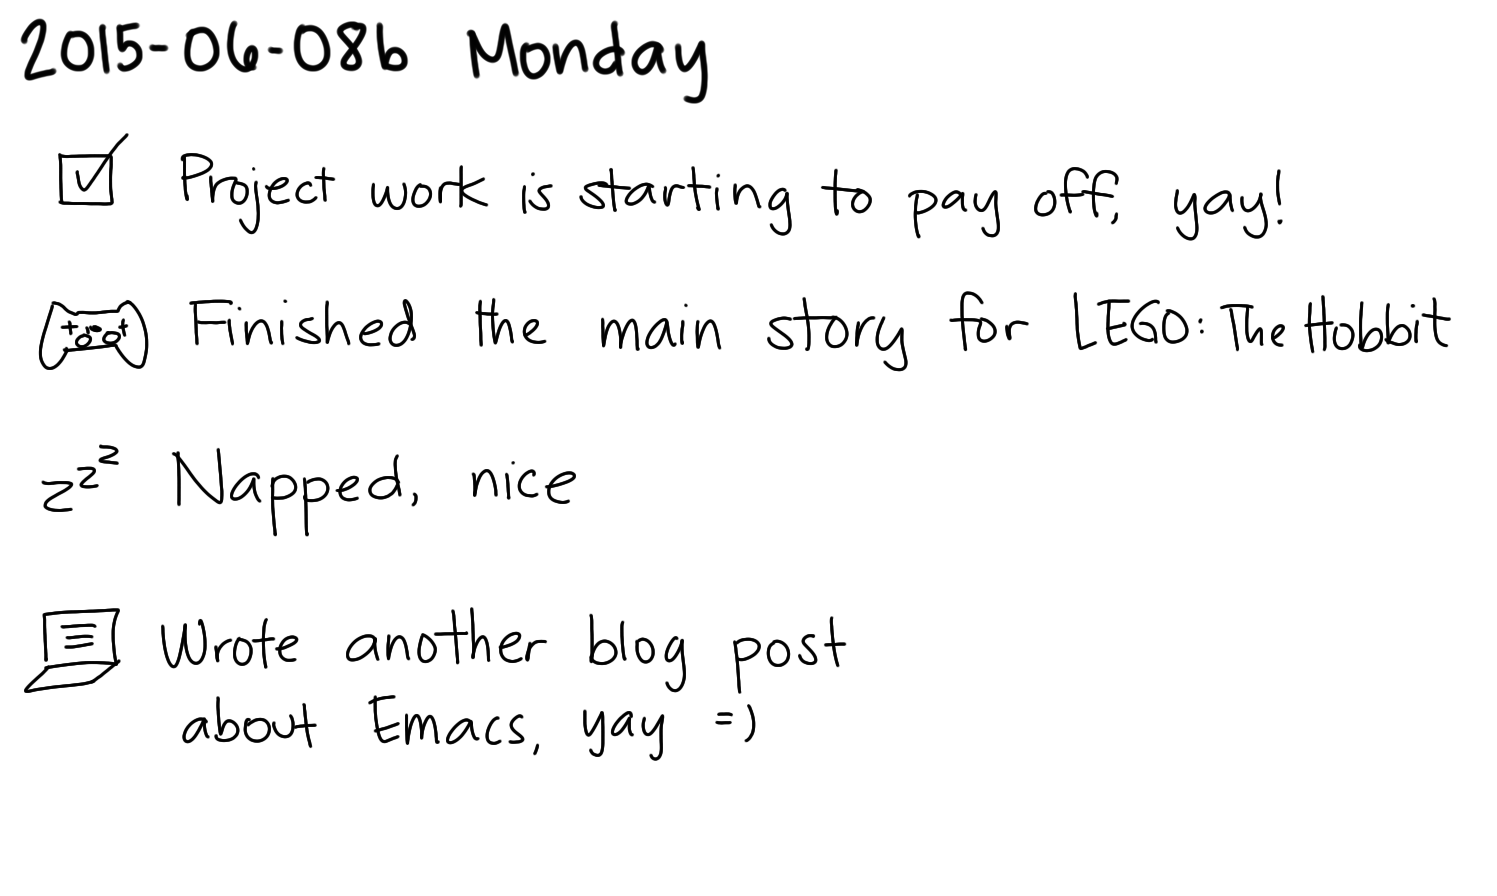 2015-06-08b Monday -- index card #journal.png